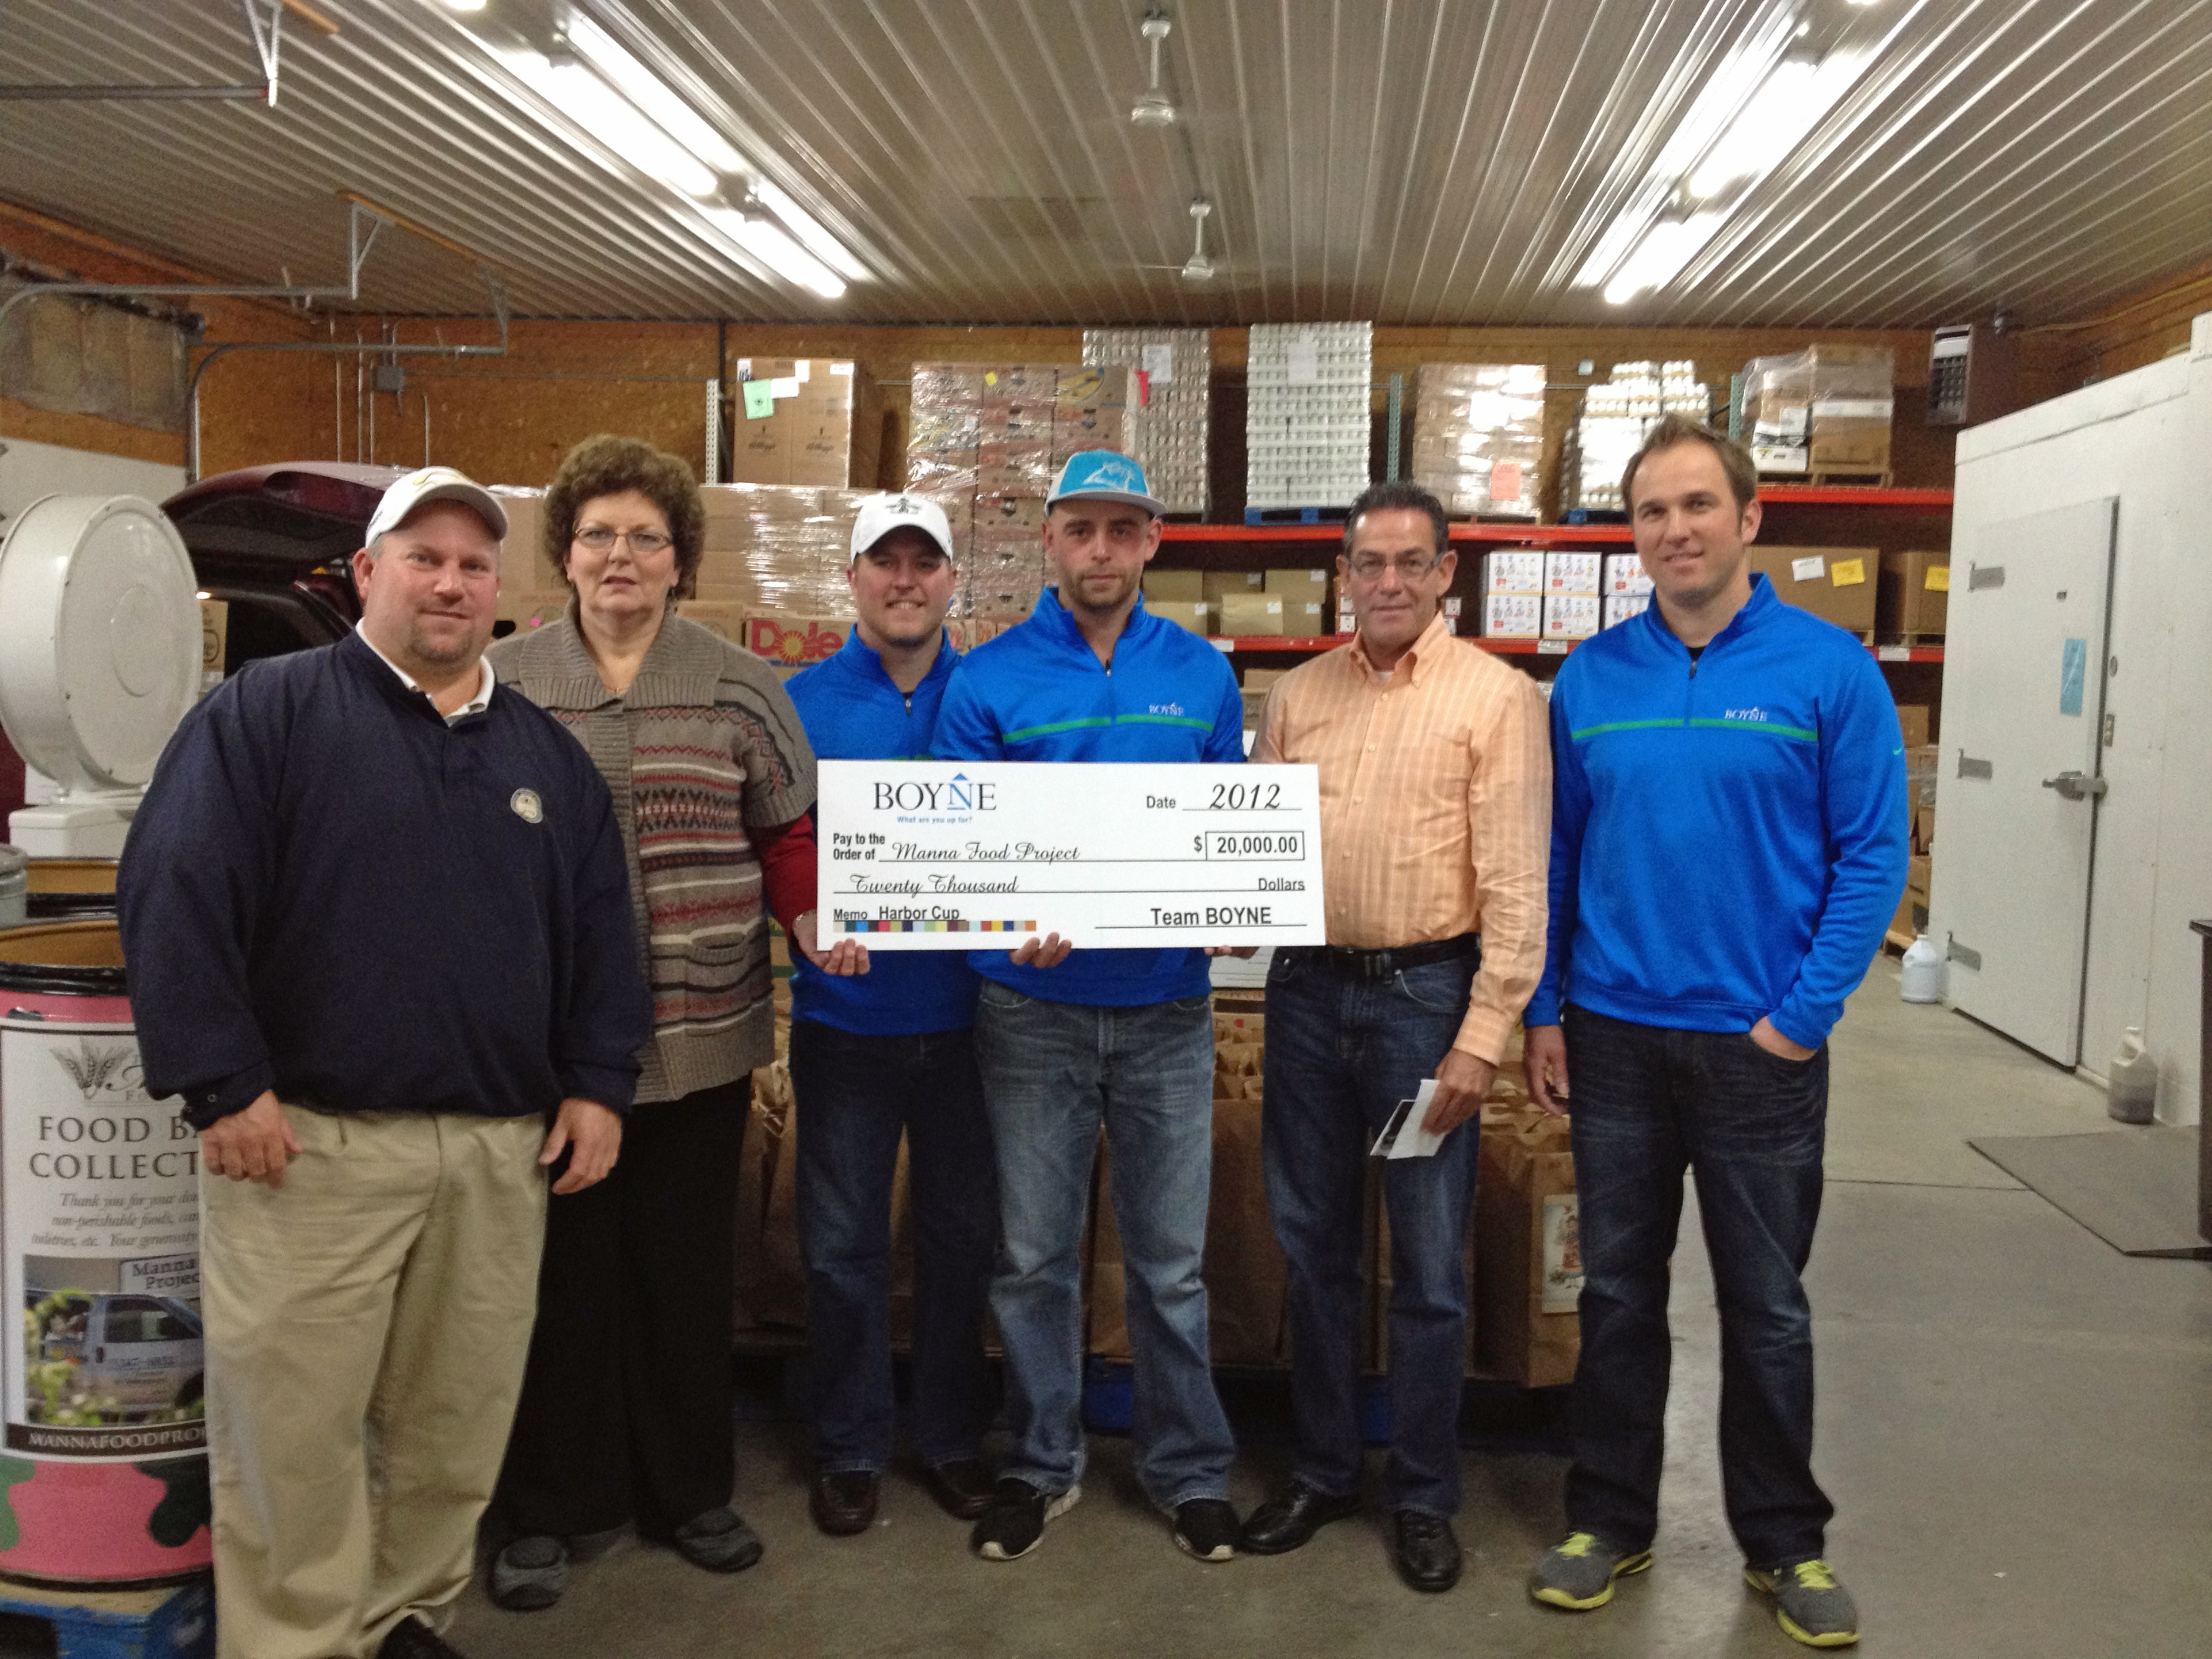 team boyne presents 20k to manna food project mike fay